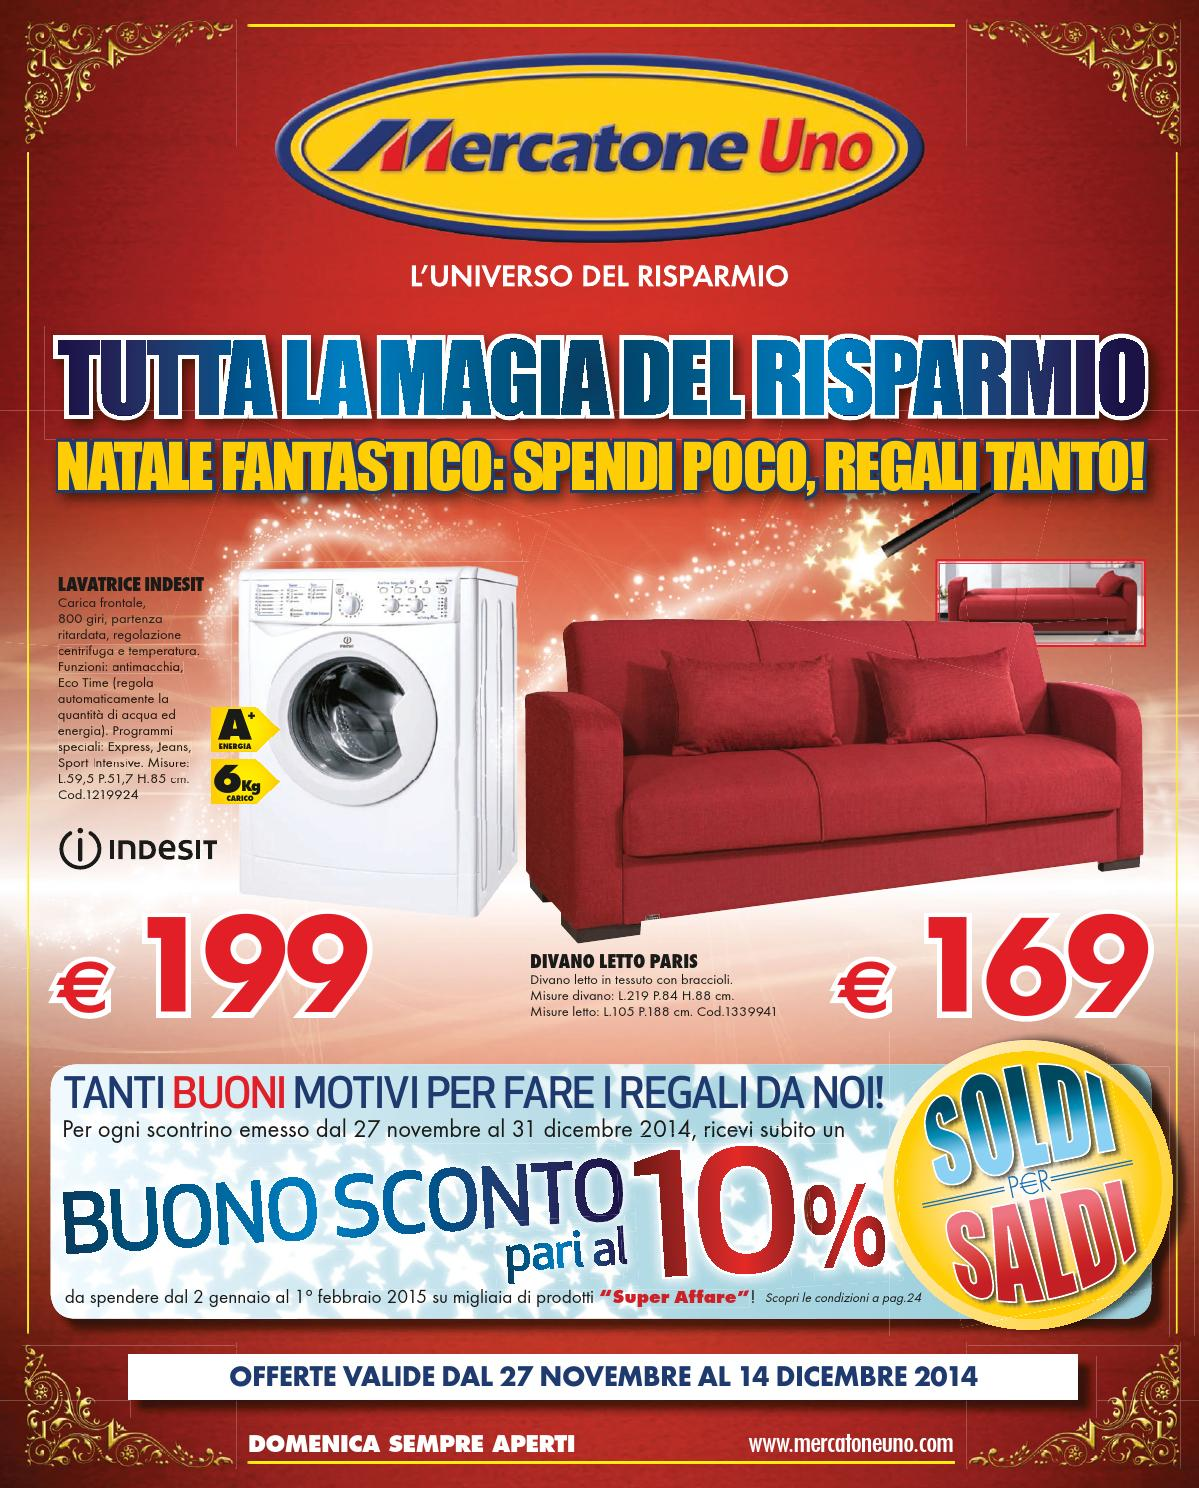 Mercatone uno catalogo natale2014 by mobilpro issuu for Mercatone uno divano